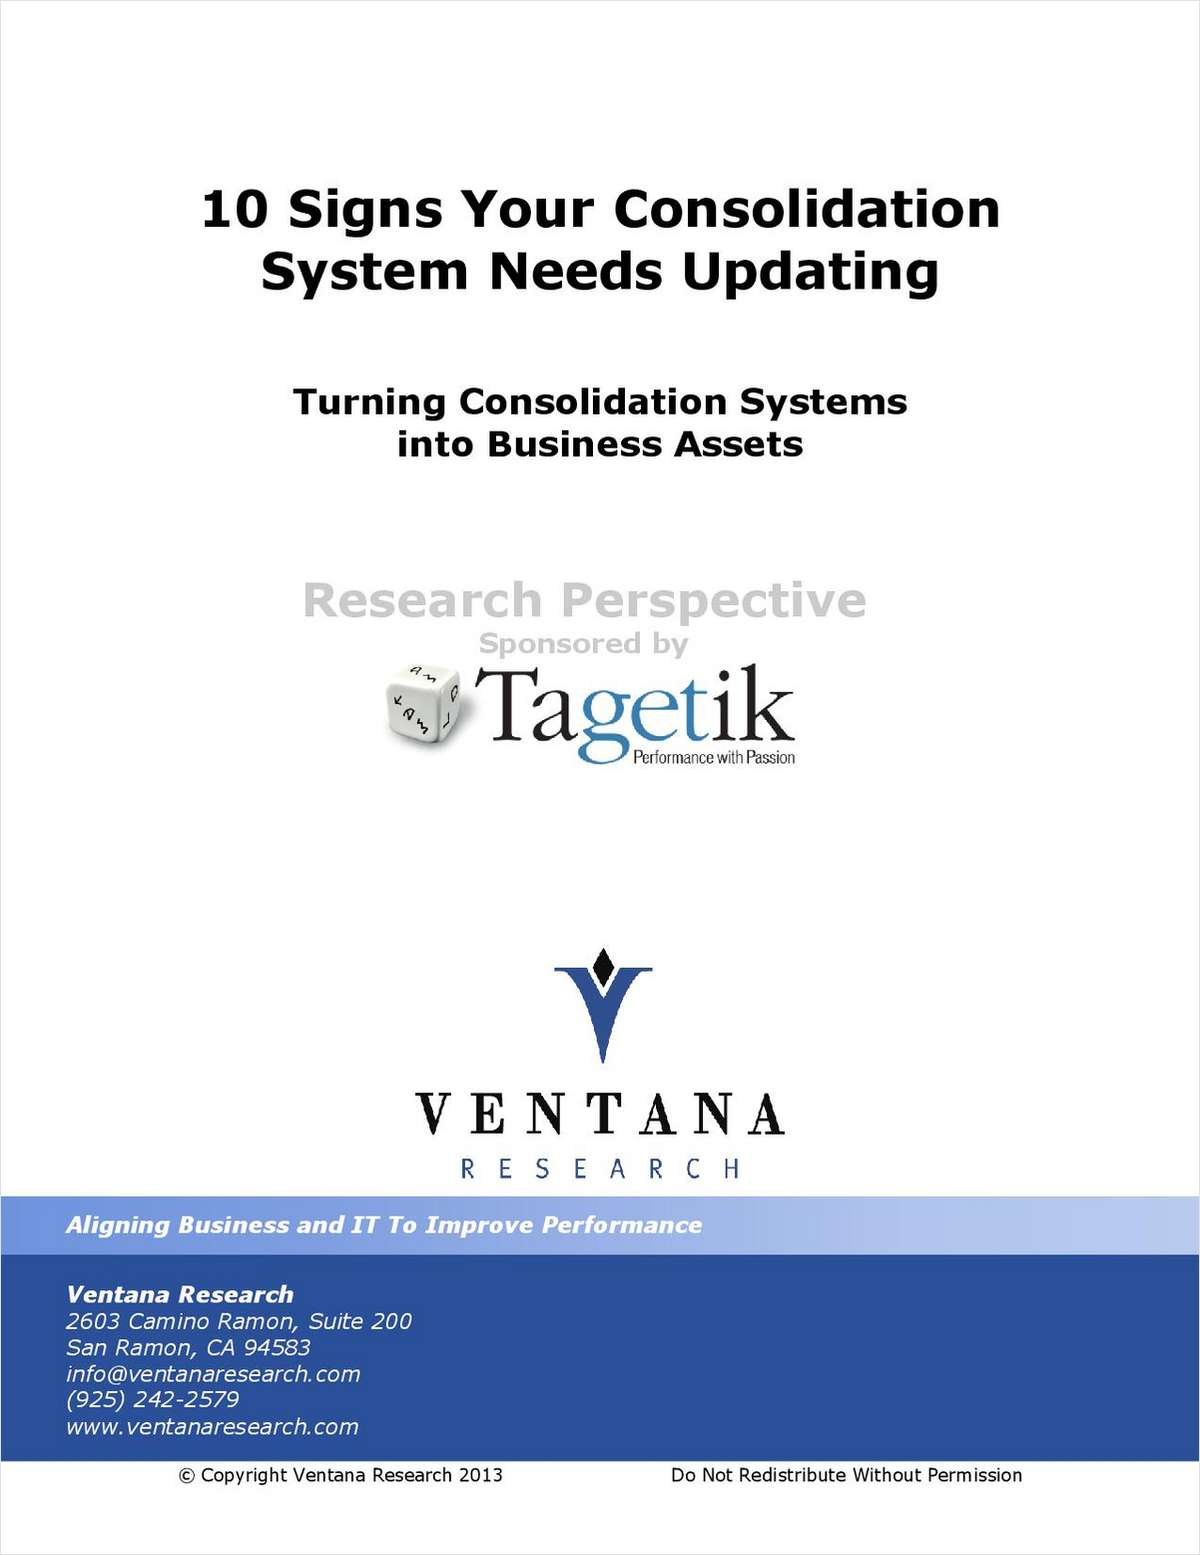 10 Signs Your Consolidation Systems Needs Updating